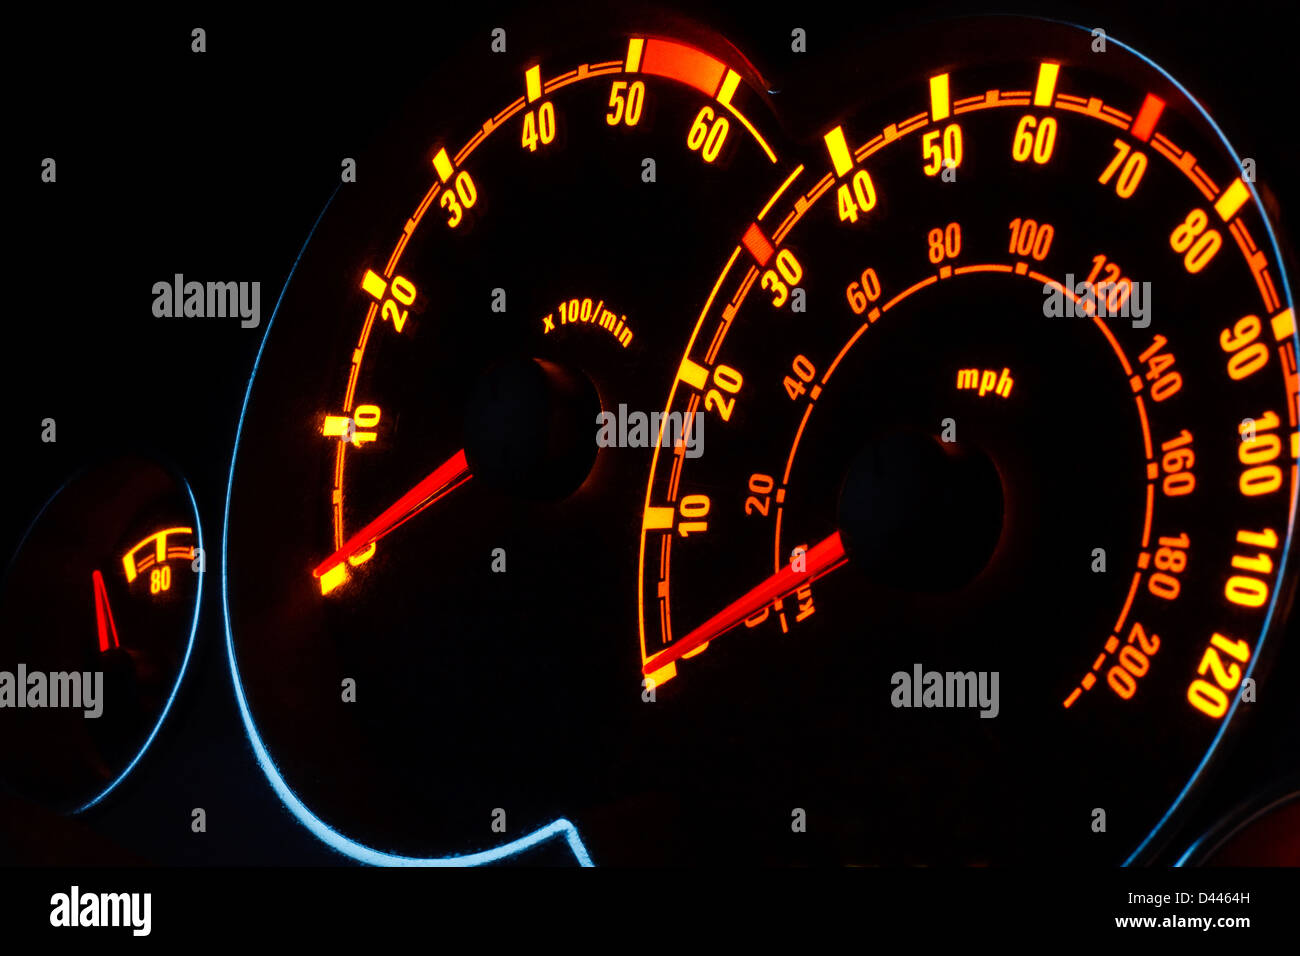 Back lit Speedometer and rev counter dashboard dials illuminated at night in automobile - Stock Image